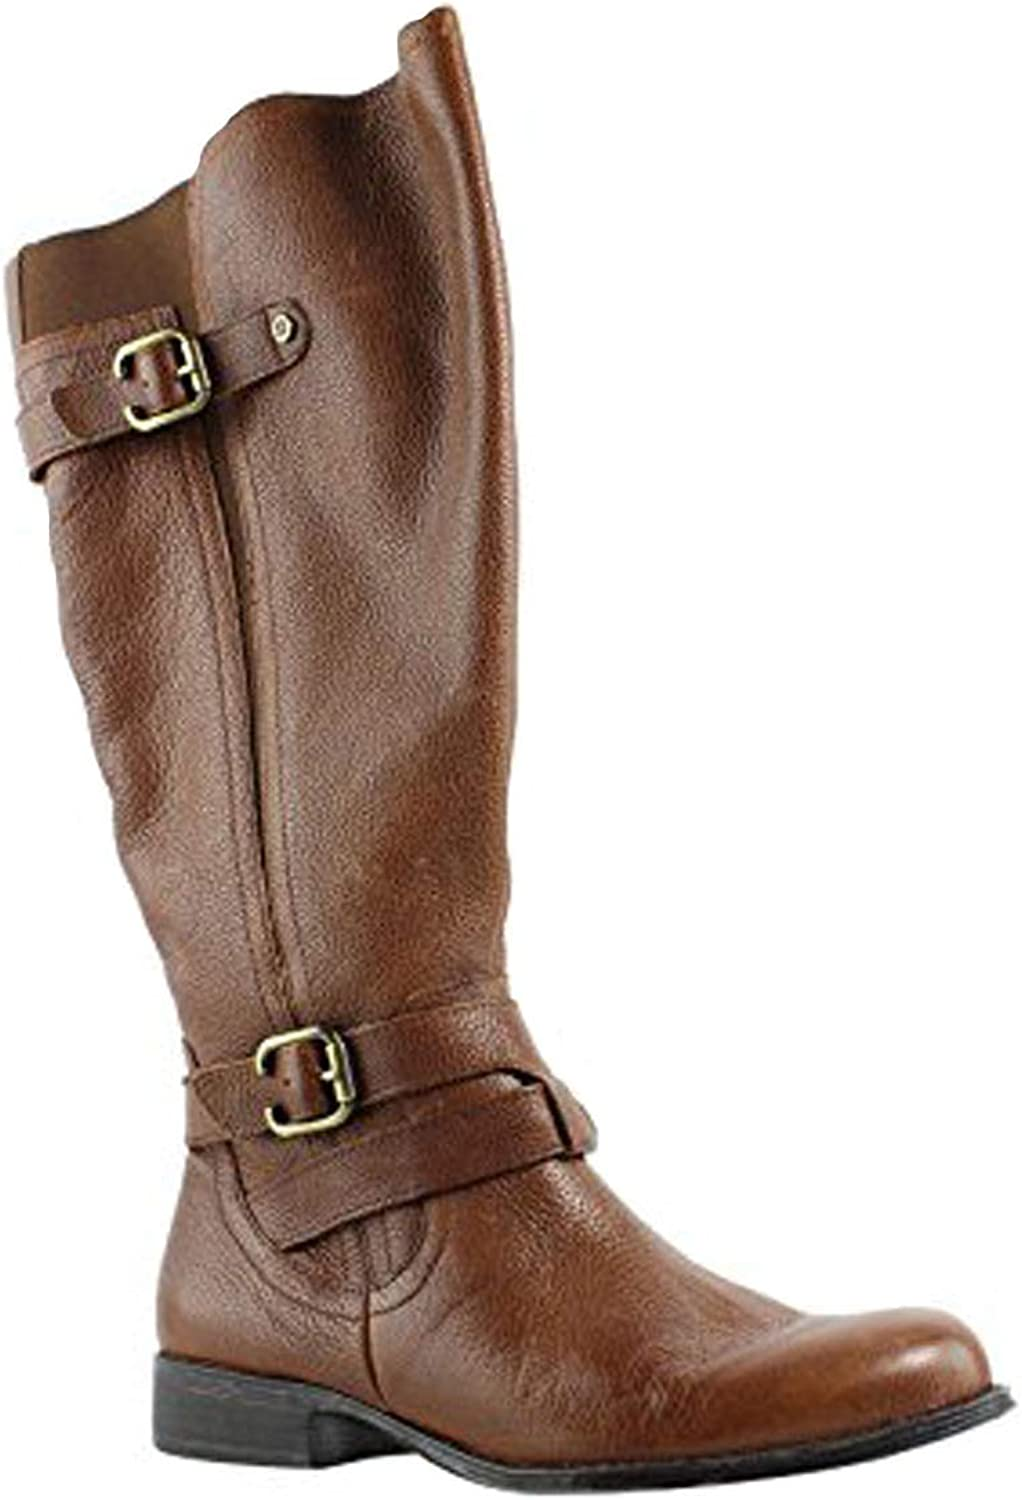 Naturalizer Women's Jordie Knee Boots, Brown Leather, 5.5 M